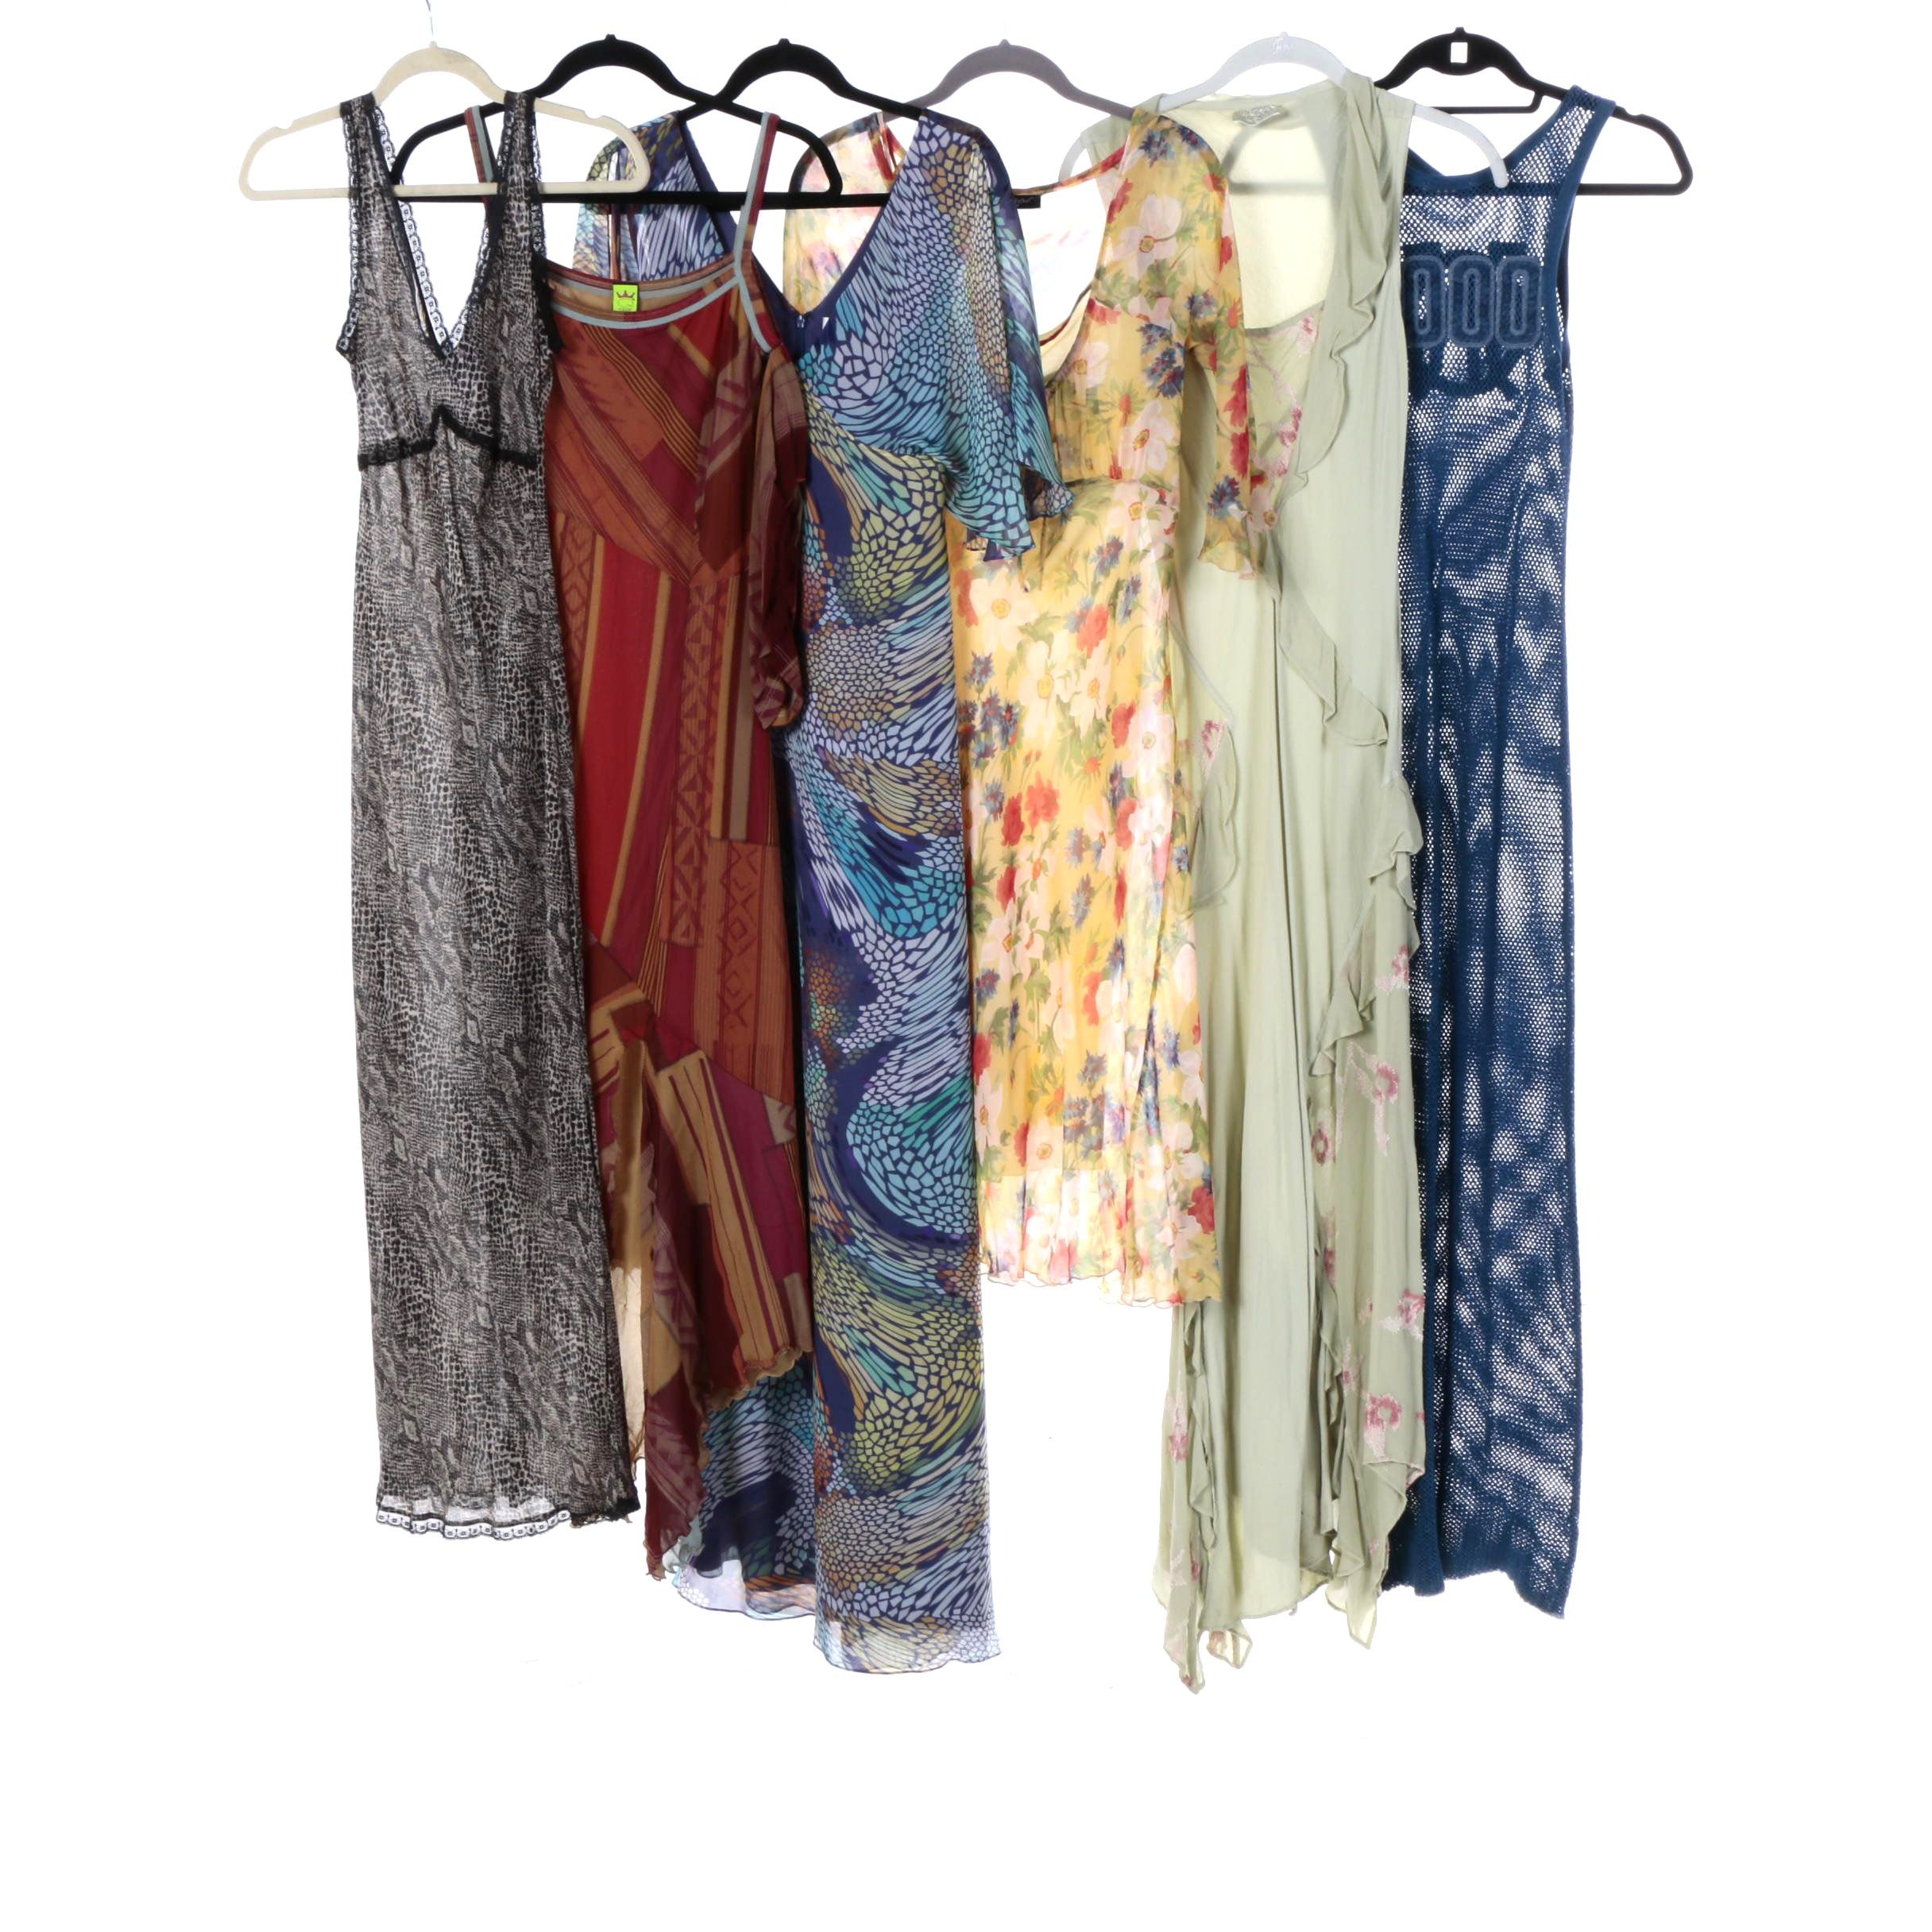 Dresses Including Betsey Johnson, Jean Paul Gaultier and Badgley Mischka